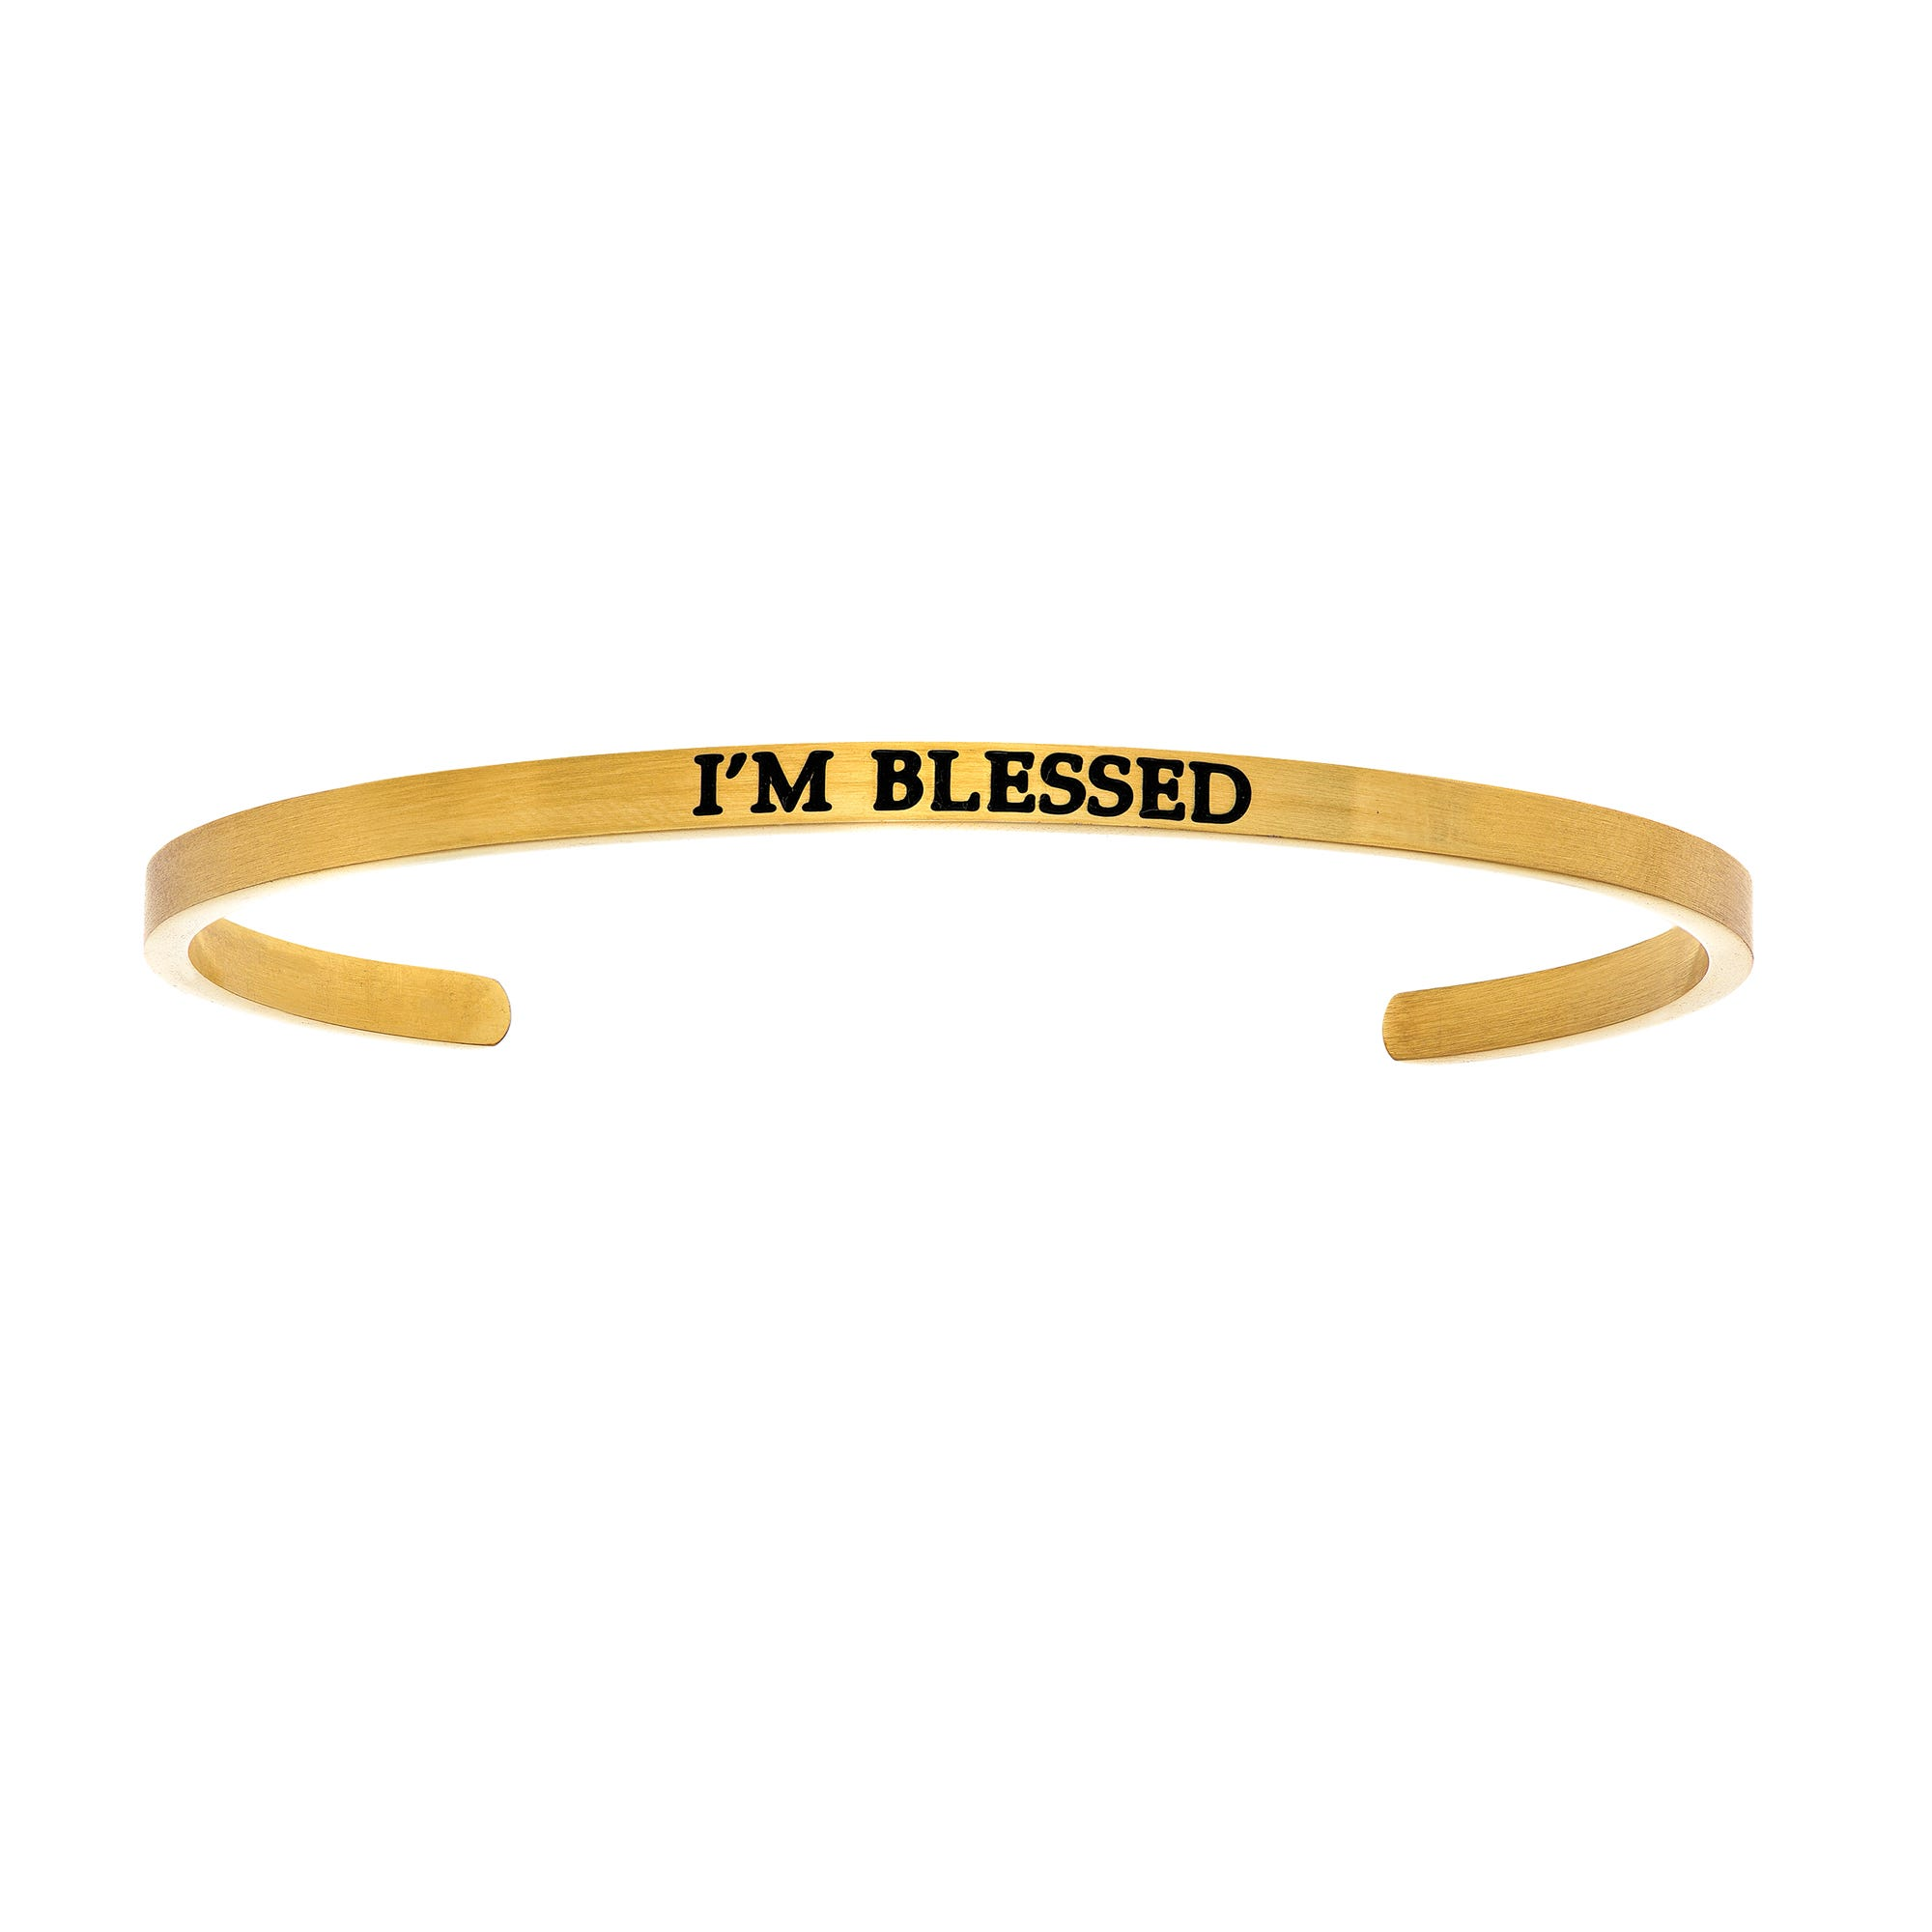 I'm Blessed. Intuitions Cuff Bracelet in Yellow Stainless Steel